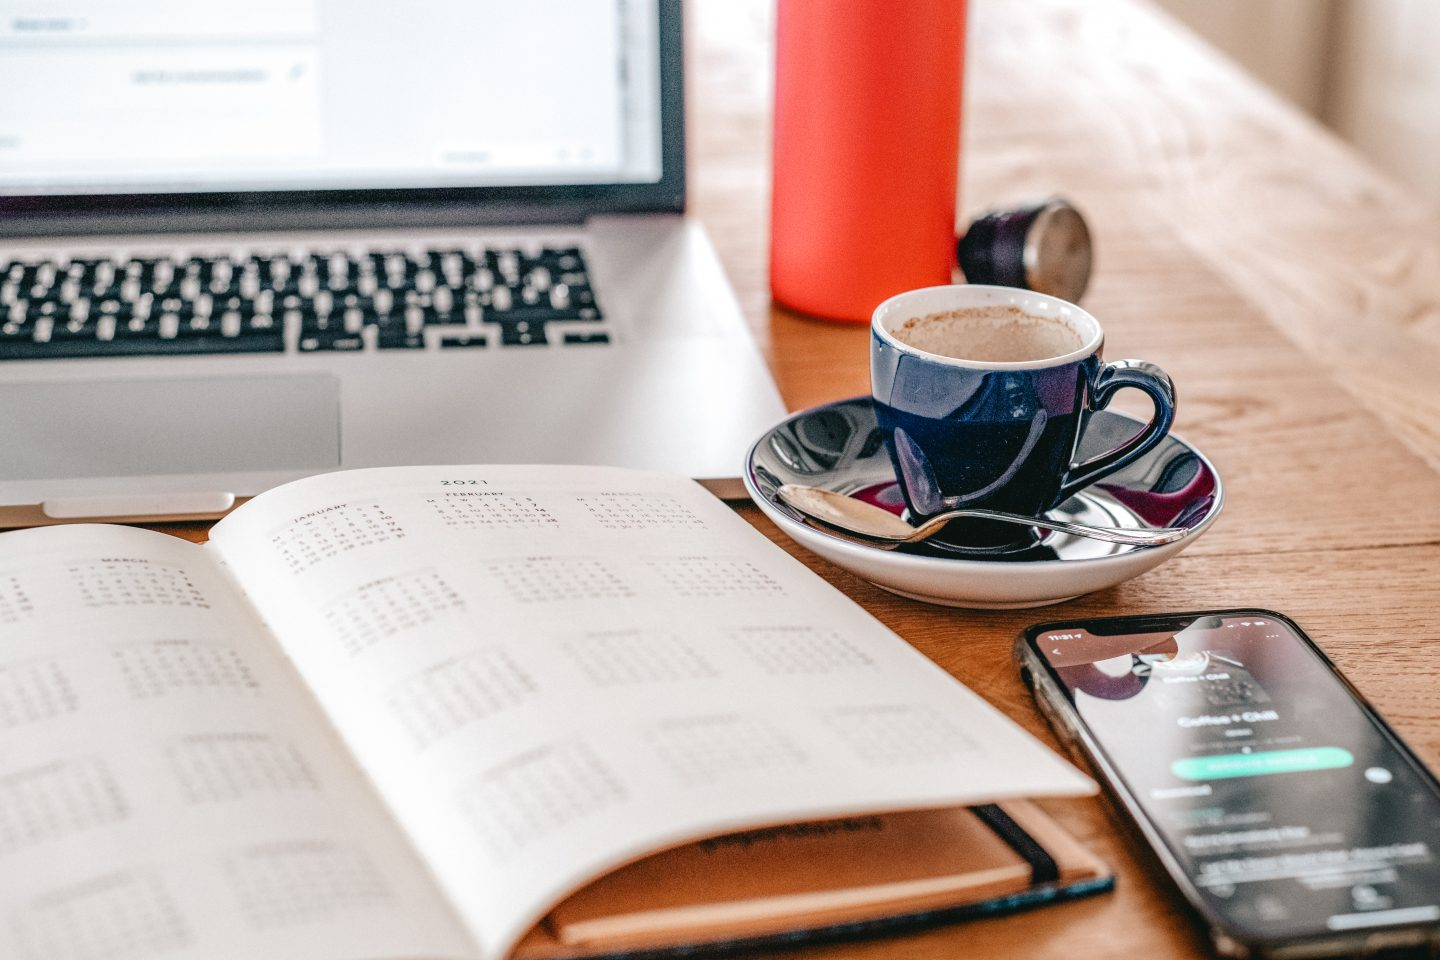 Coffee cup, diary and a laptop